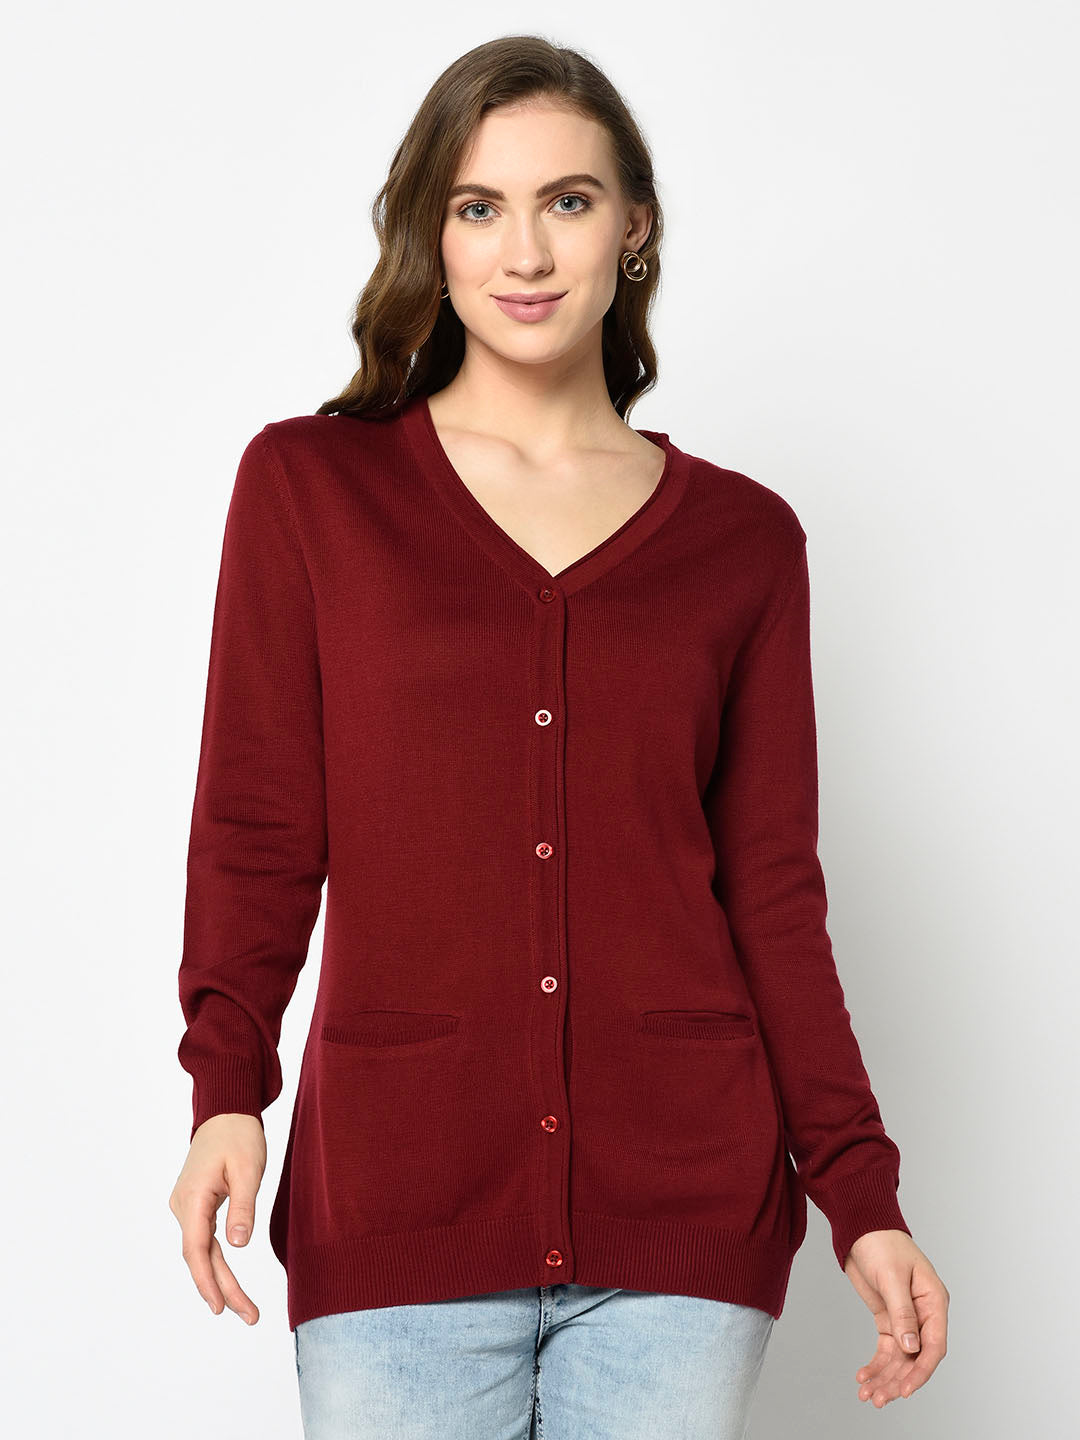 Maroon Cardigan with Pockets